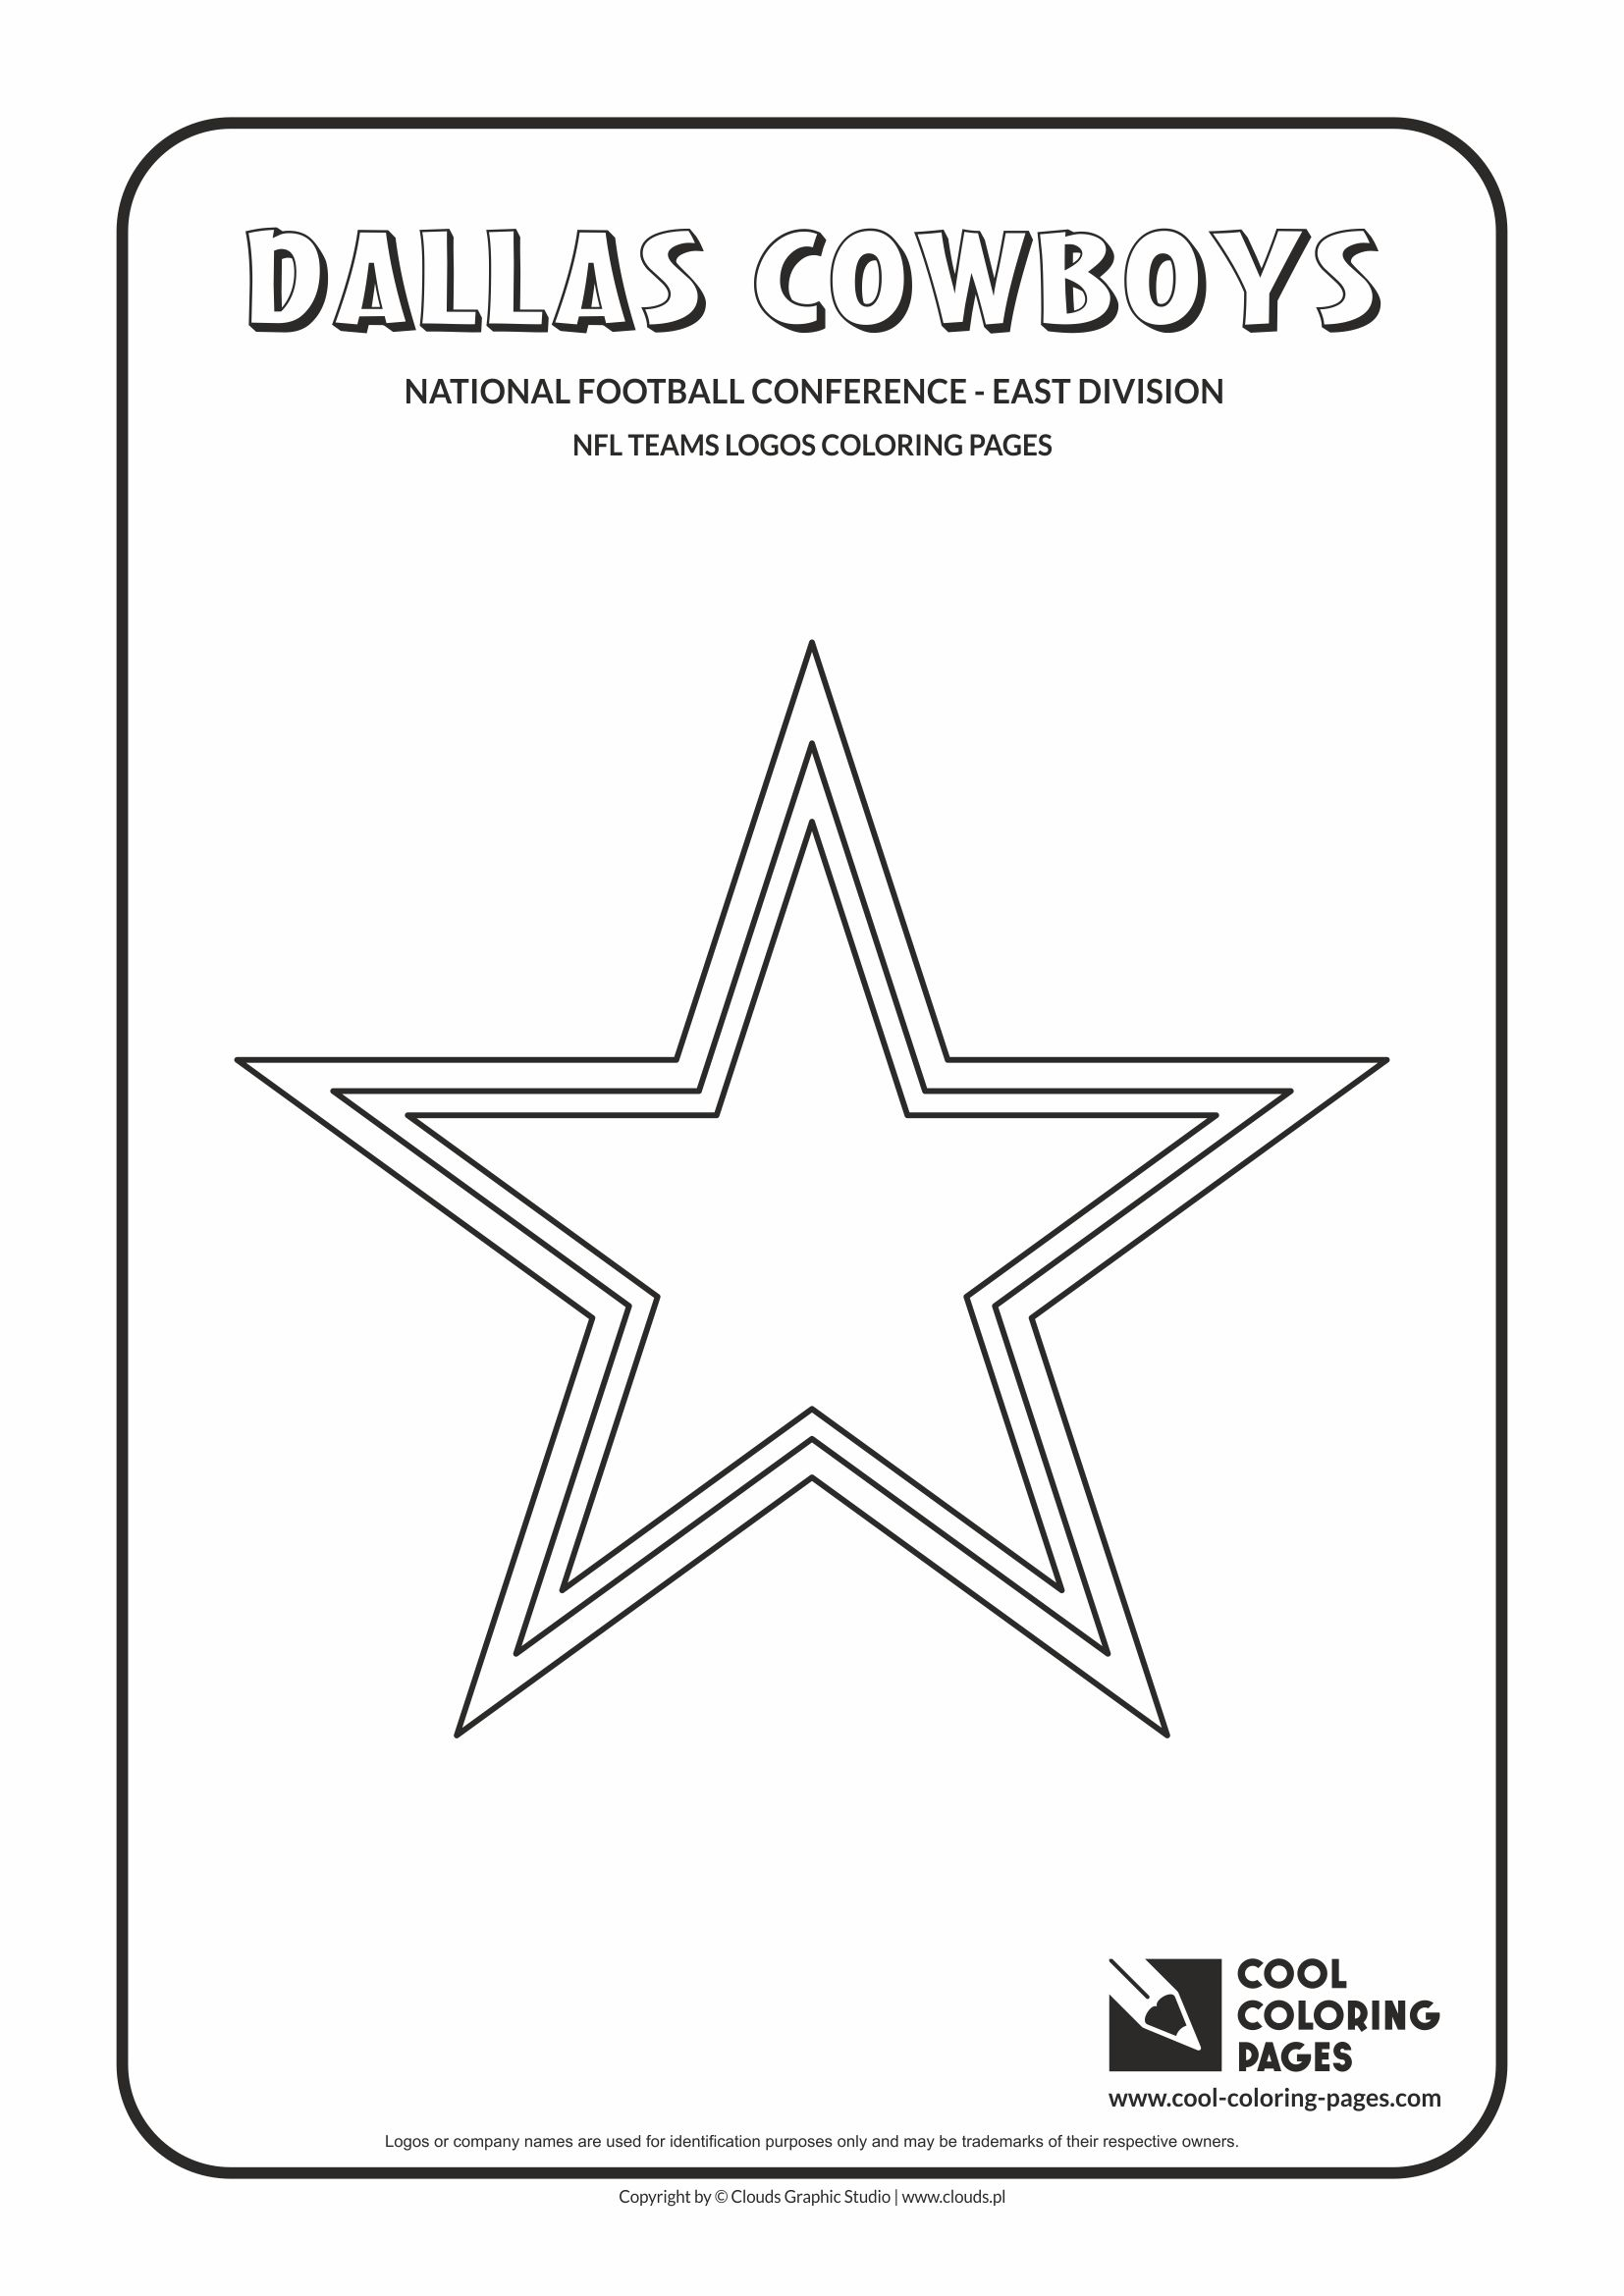 Nfl Teams Logos Coloring Pages Cool Coloring Pages Dallas Cowboys Logo Coloring Page Printable